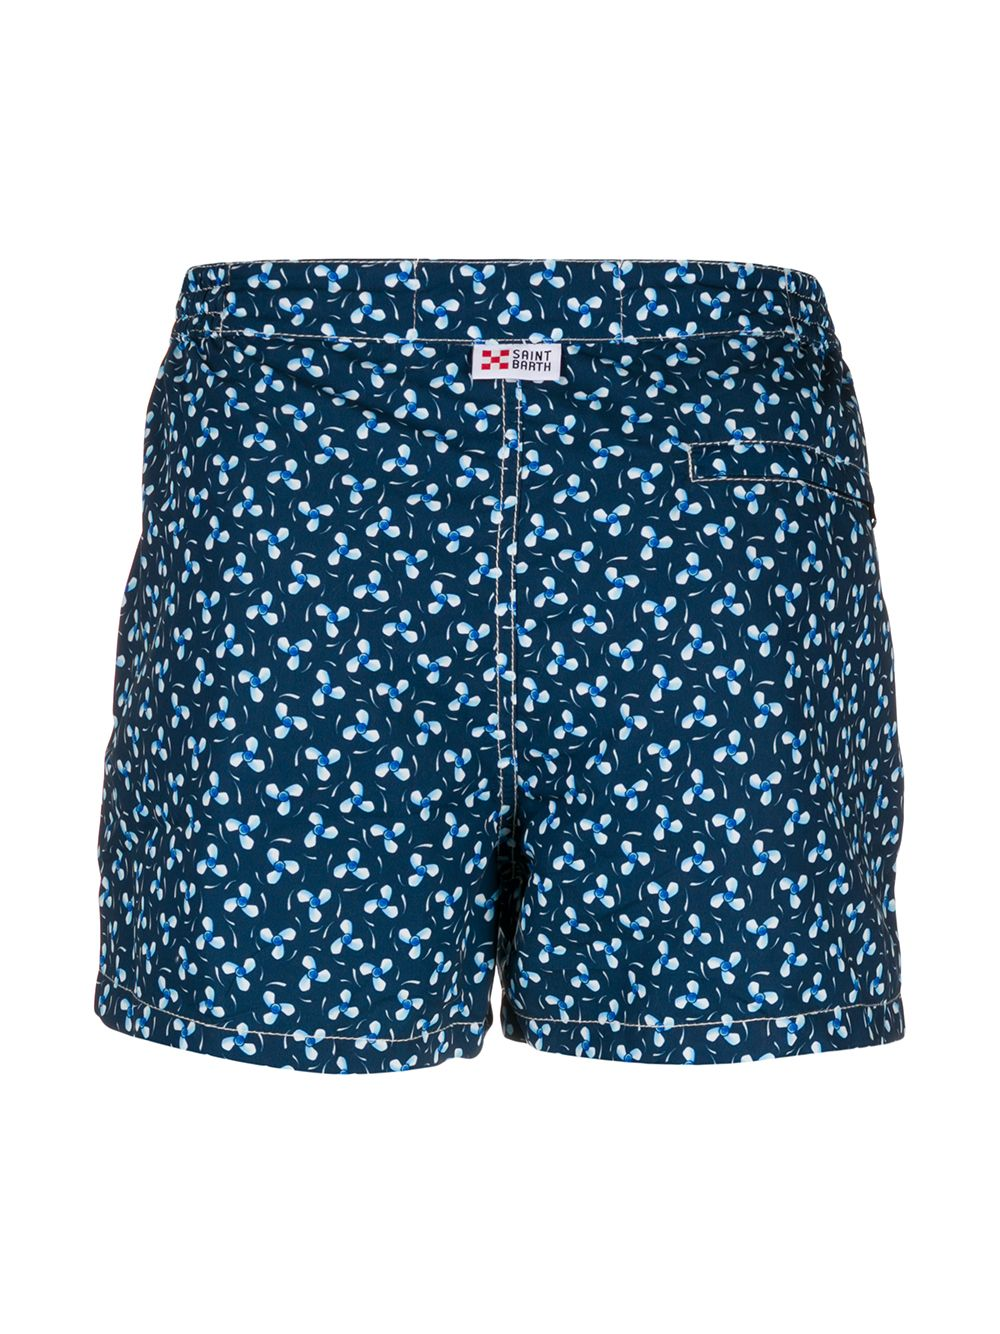 tonal blue Harrys propeller-print swim shorts  MC2 |  | HARRYS-PROPELLER61